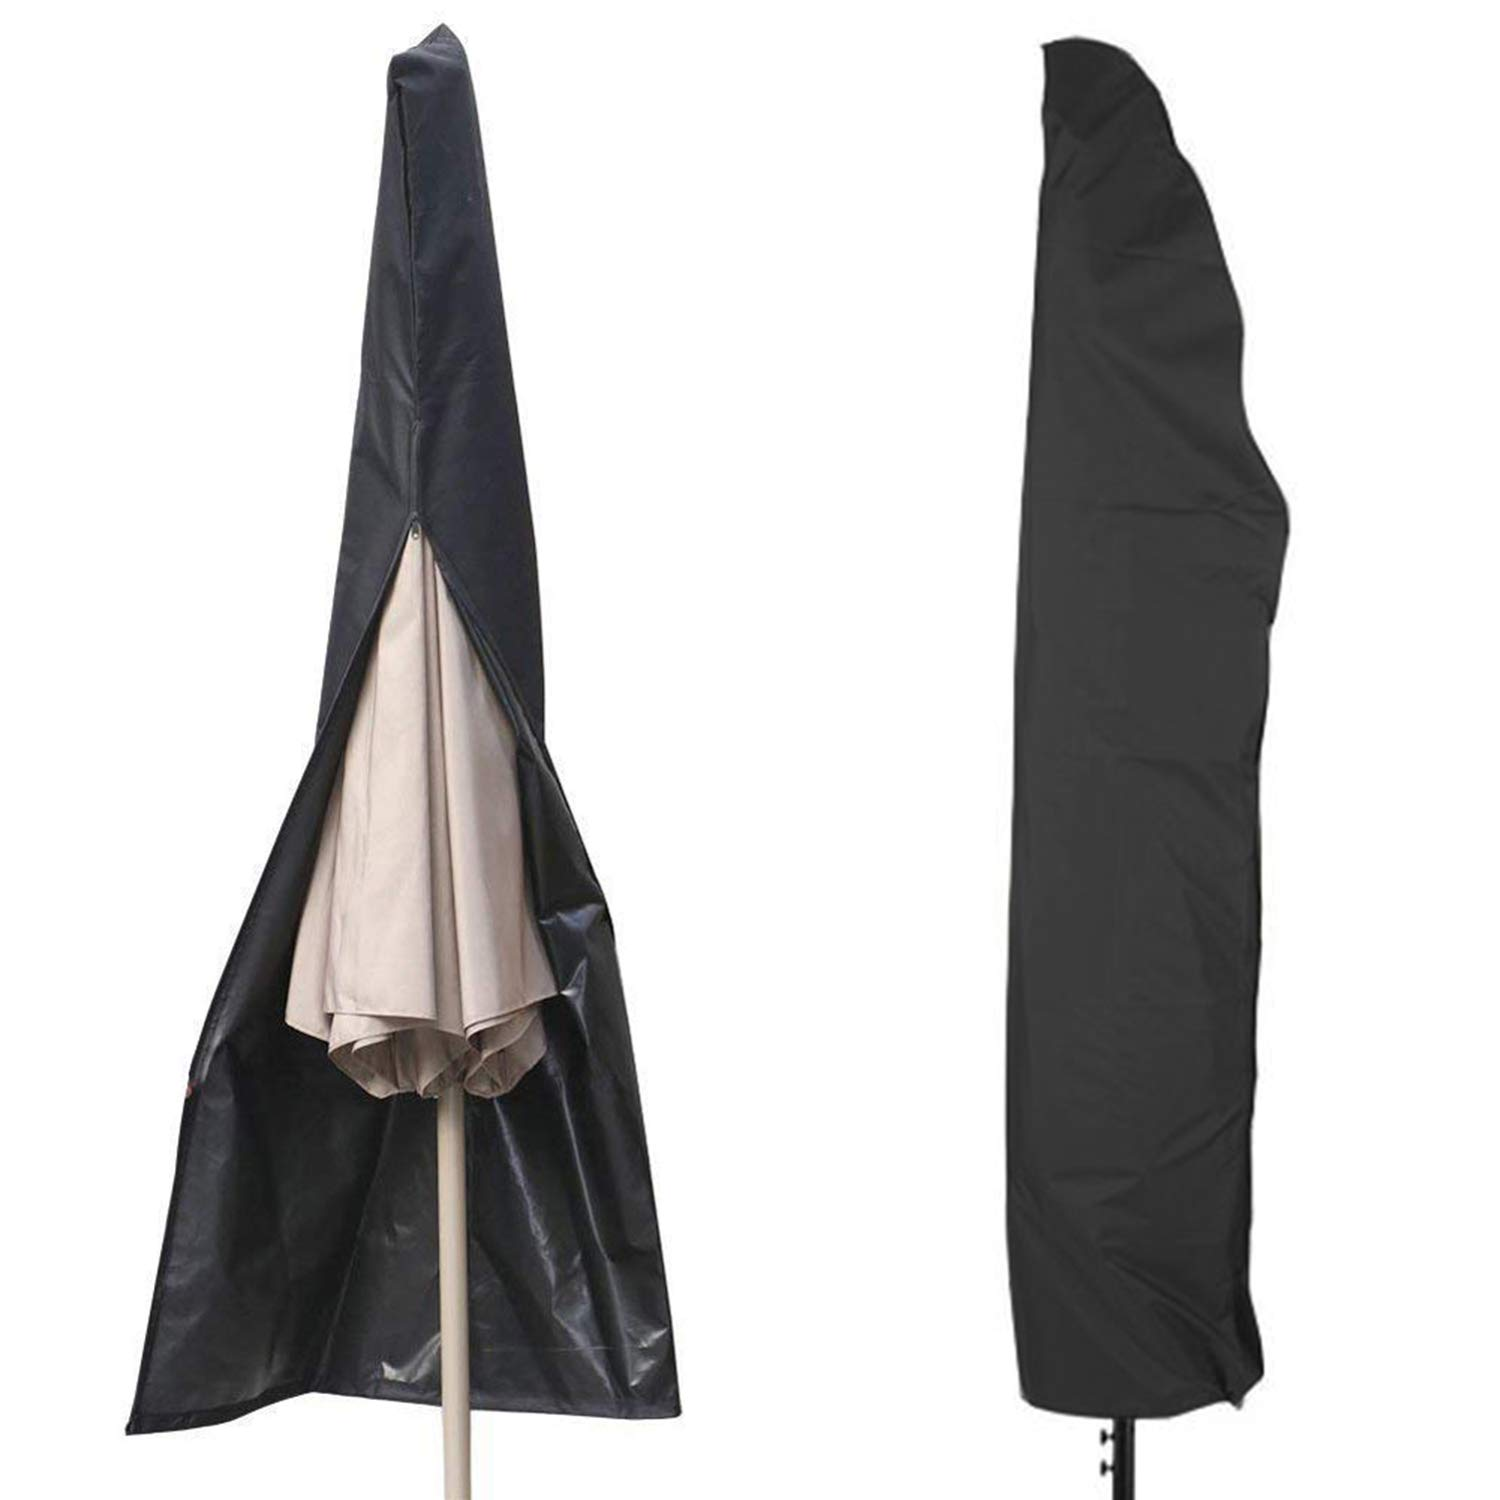 GUGUO Parasol Cover, Weatherproof Waterproof Outdoor Patio Zipper Parasol Umbrella Cover For Diameter 3M Parasols,Black 600D Oxford Fabric, With Storage Zipper Bag (Black)